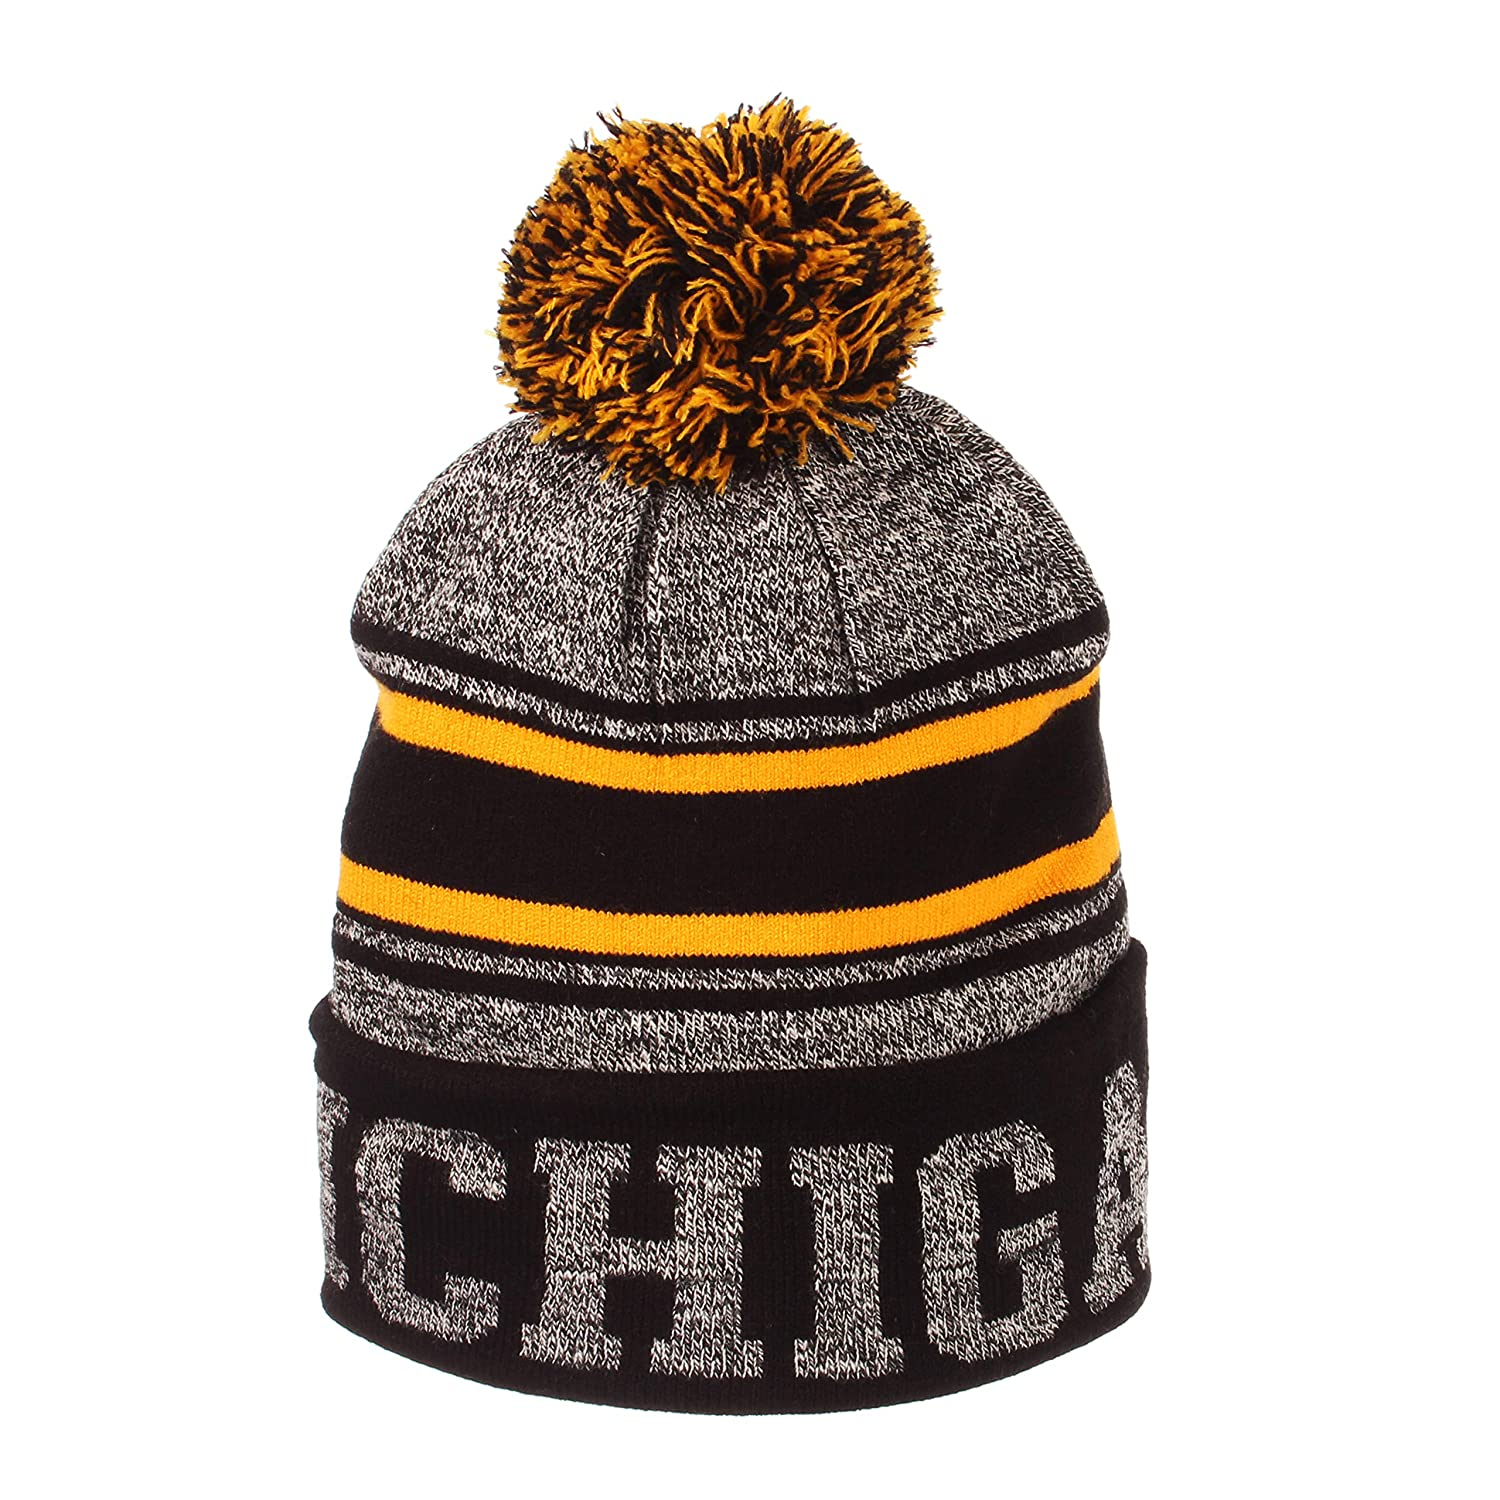 0590205e60840c Amazon.com: Michigan Wolverines Official NCAA Orbit Cuffed Pom Knit Beanie  Sock Hat by Zephyr 795811: Clothing